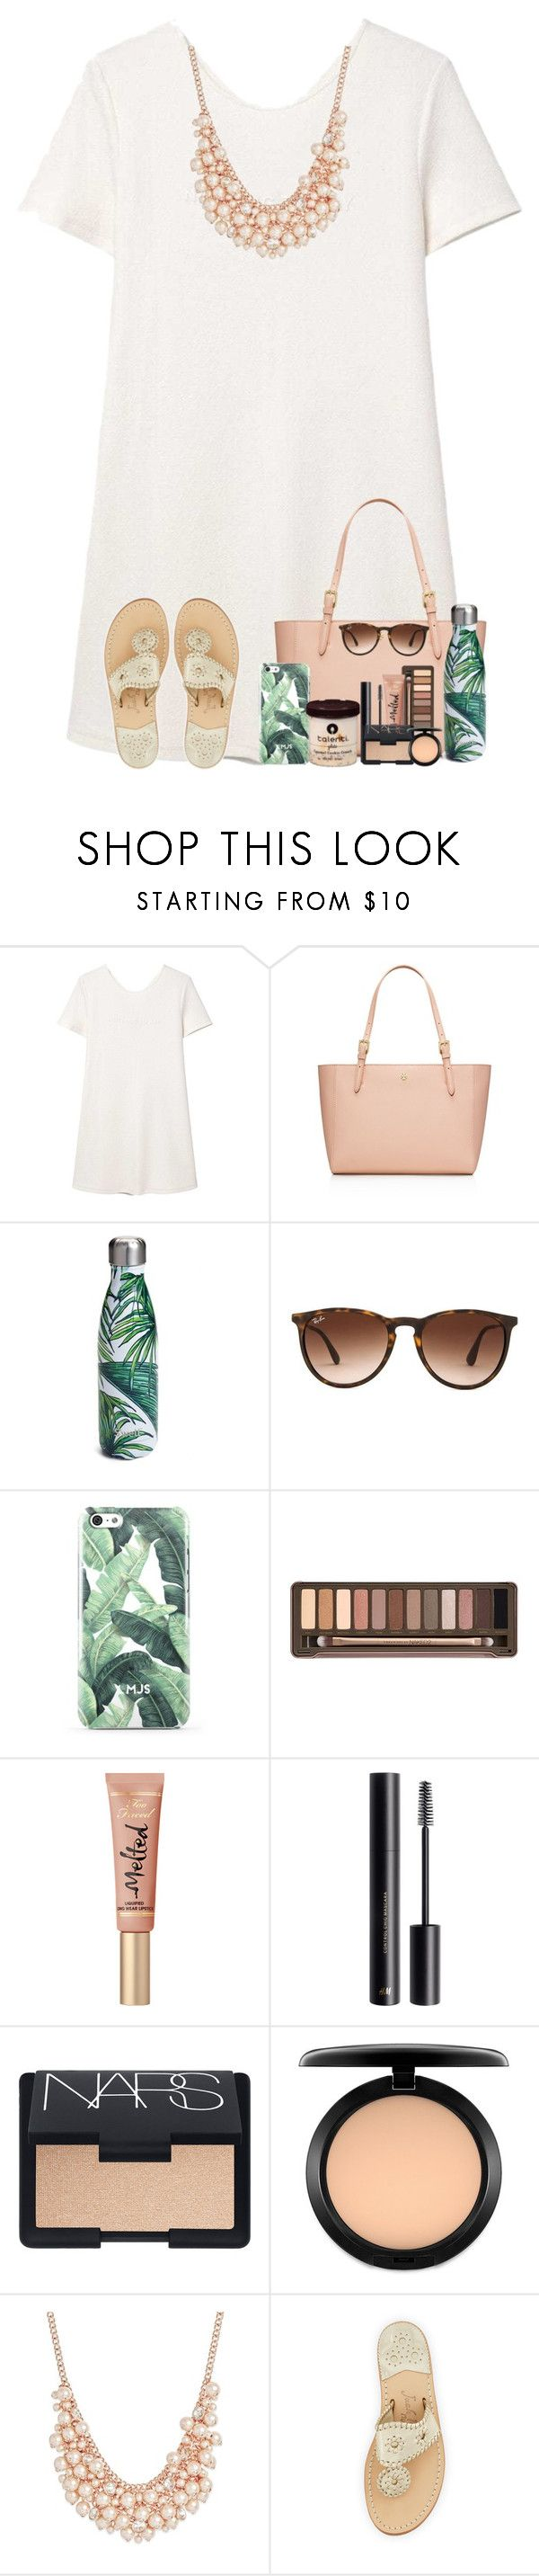 """""""Every Time I Look At You, It's Like The First Time"""" by theafergusma ❤ liked on Polyvore featuring MANGO, Tory Burch, S'well, Ray-Ban, Urban Decay, H&M, NARS Cosmetics, MAC Cosmetics, Charter Club and Jack Rogers"""